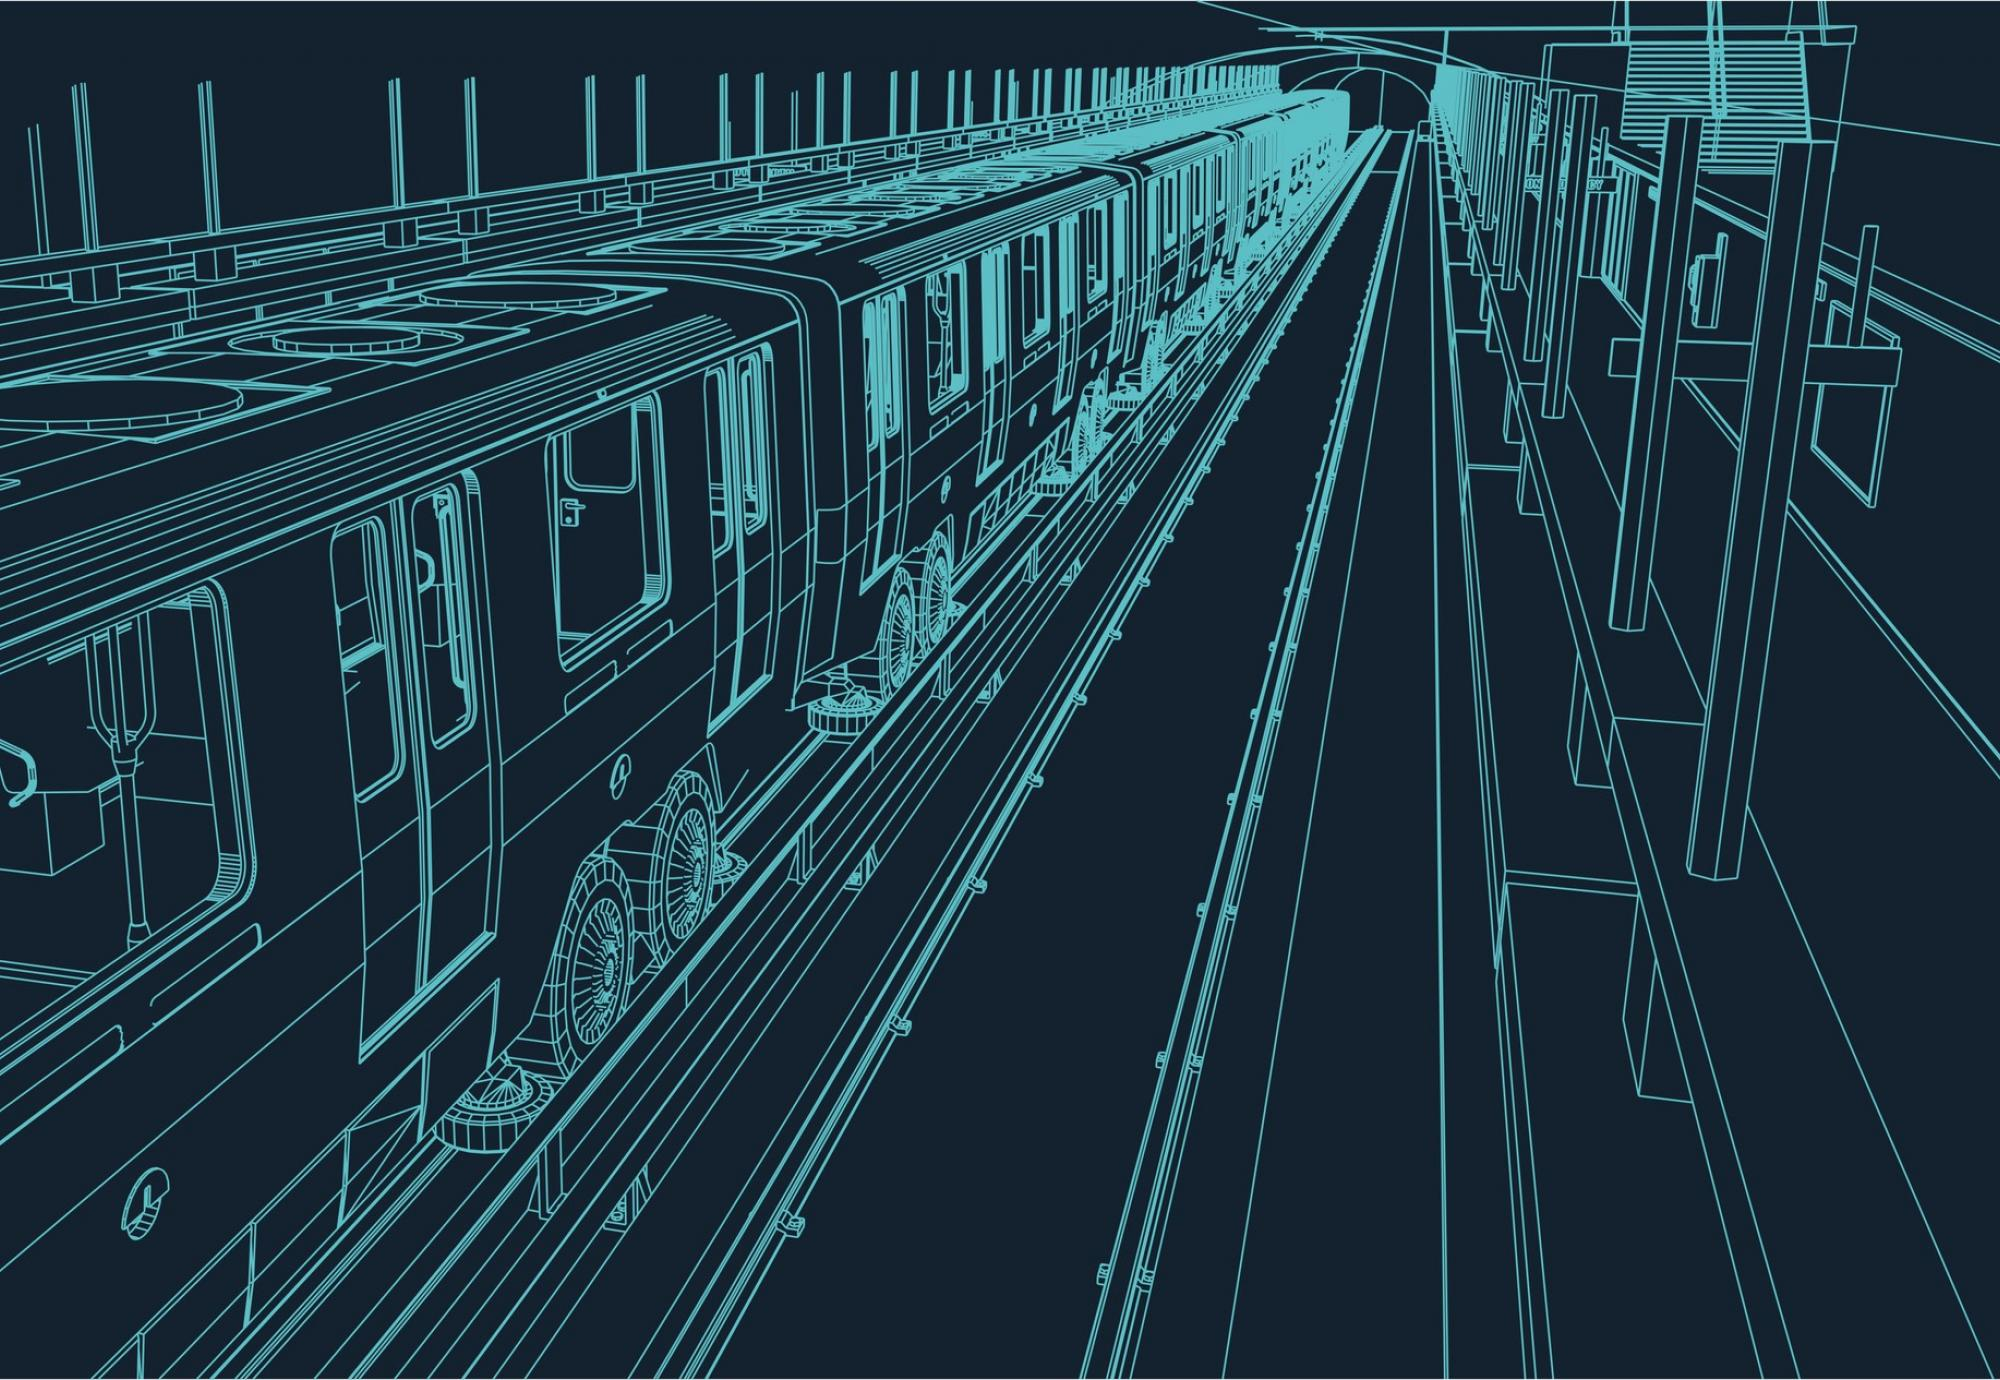 Wireframe blueprint of a metro train in a station